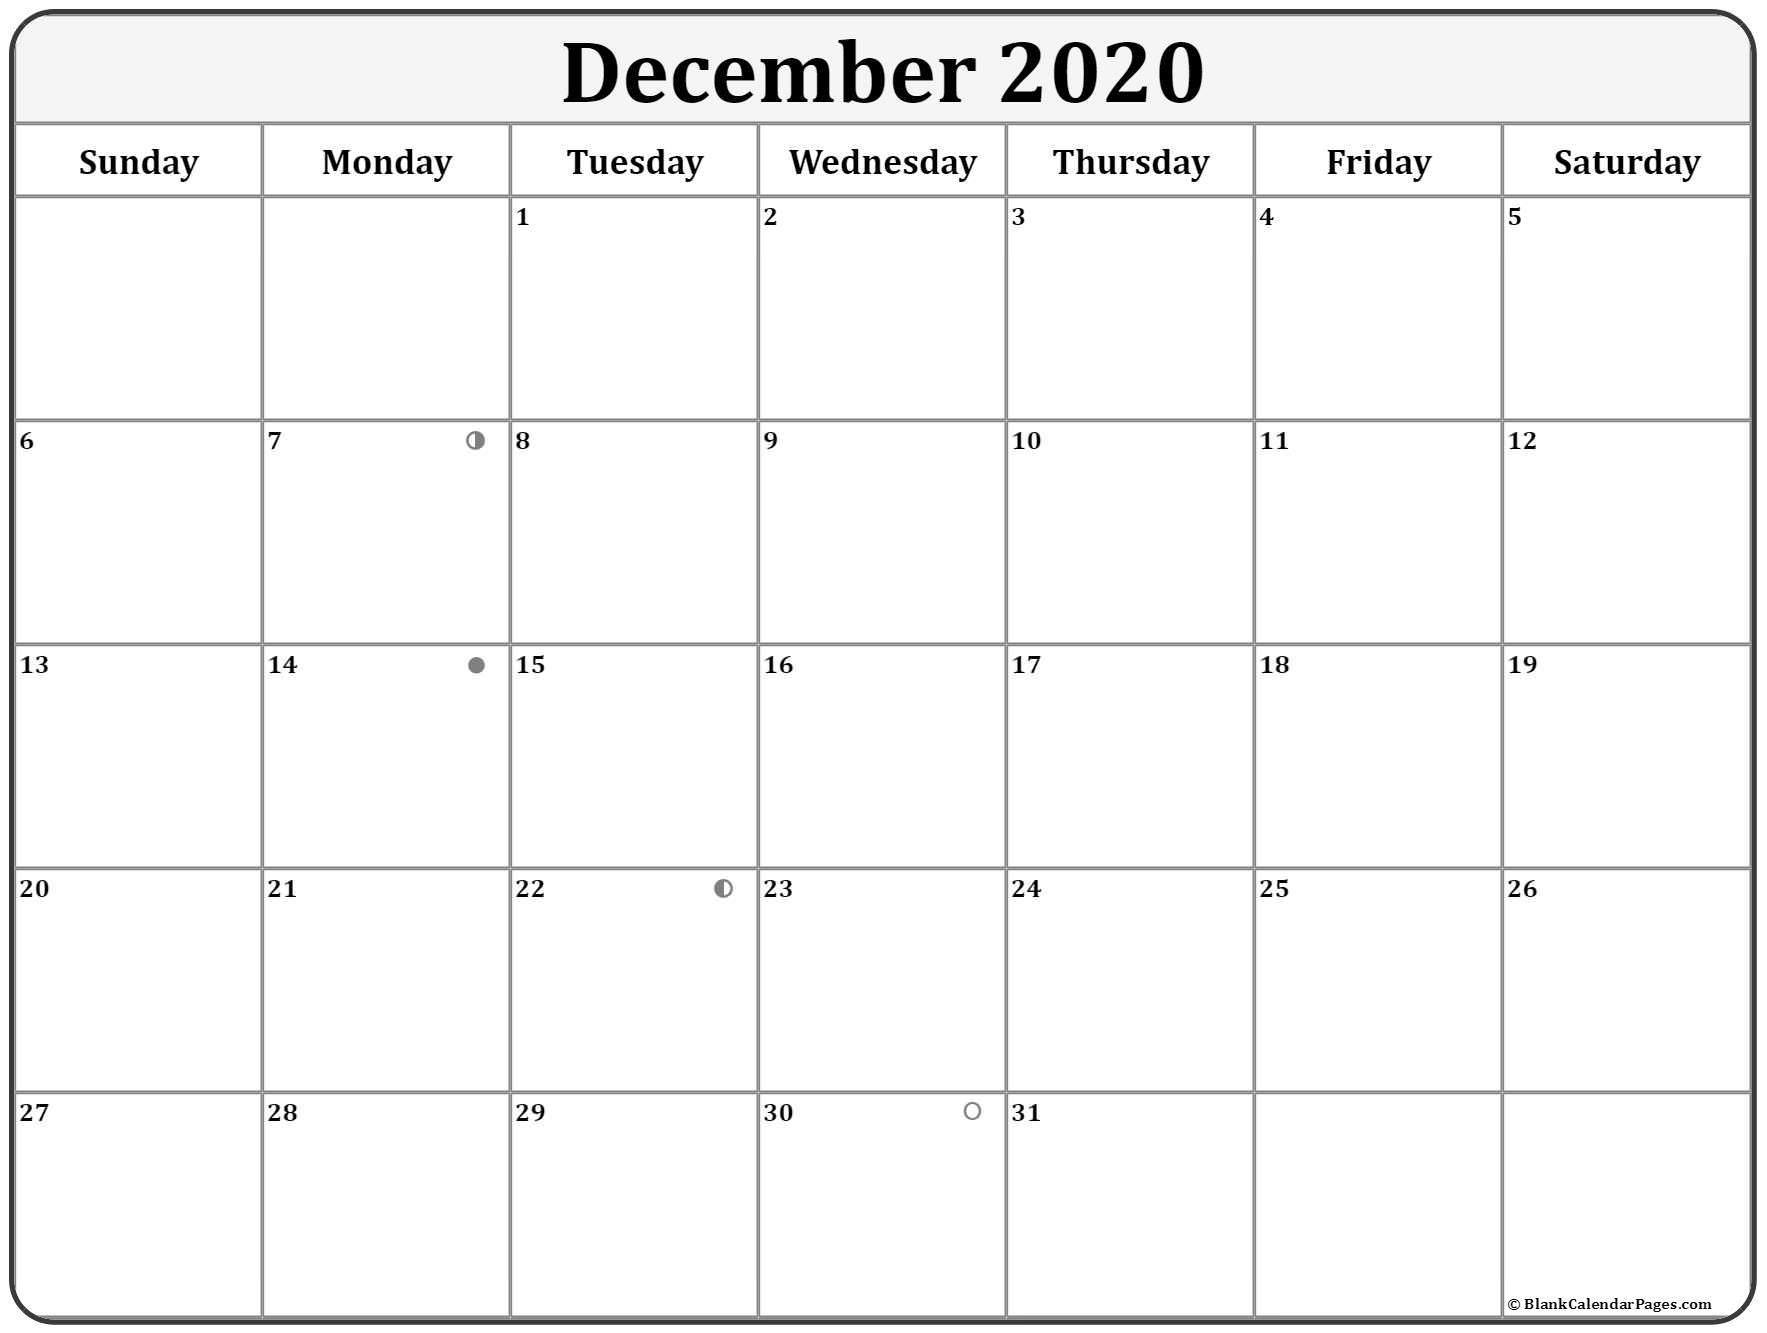 December 2020 Lunar Calendar | Moon Phase Calendar with regard to 123 Calendars December 2020